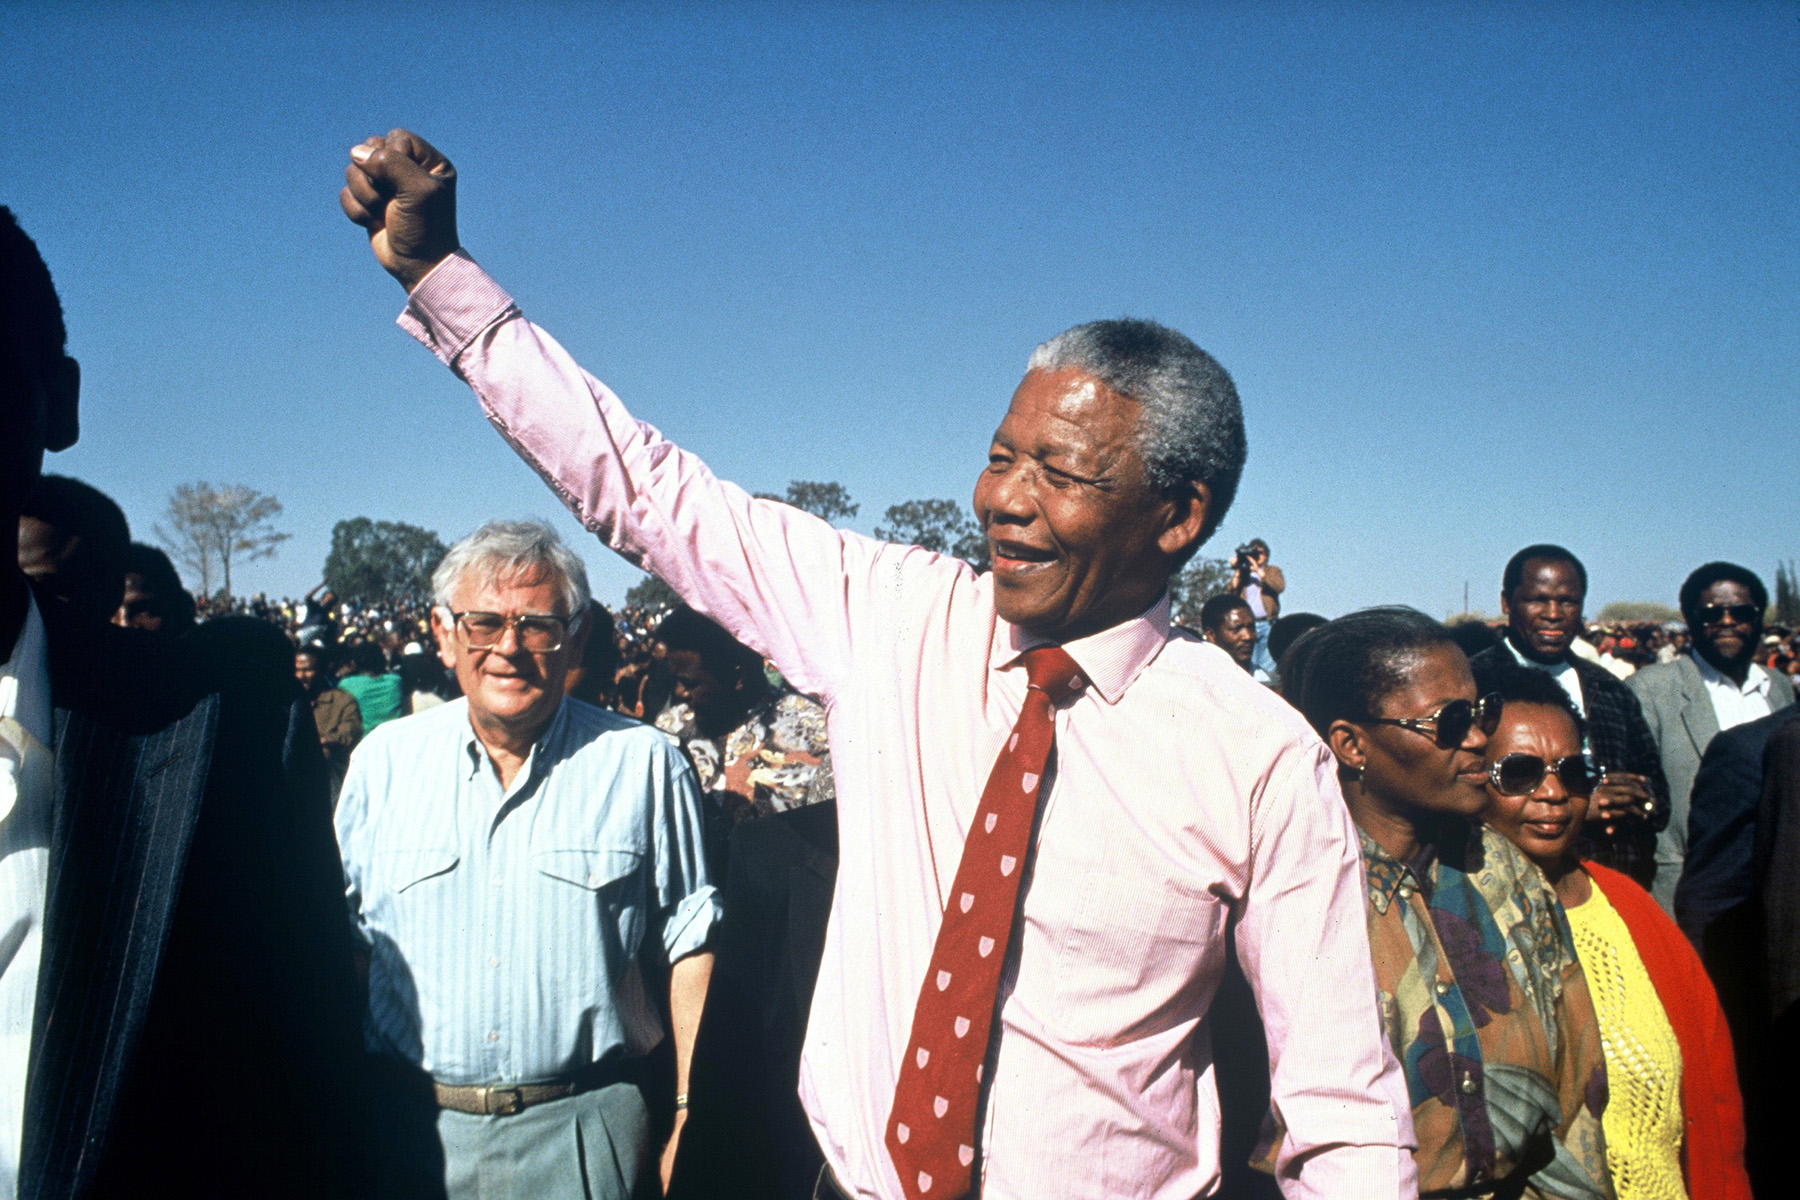 South Africa : Nelson Mandela in Boipatong Township near Johannesburg